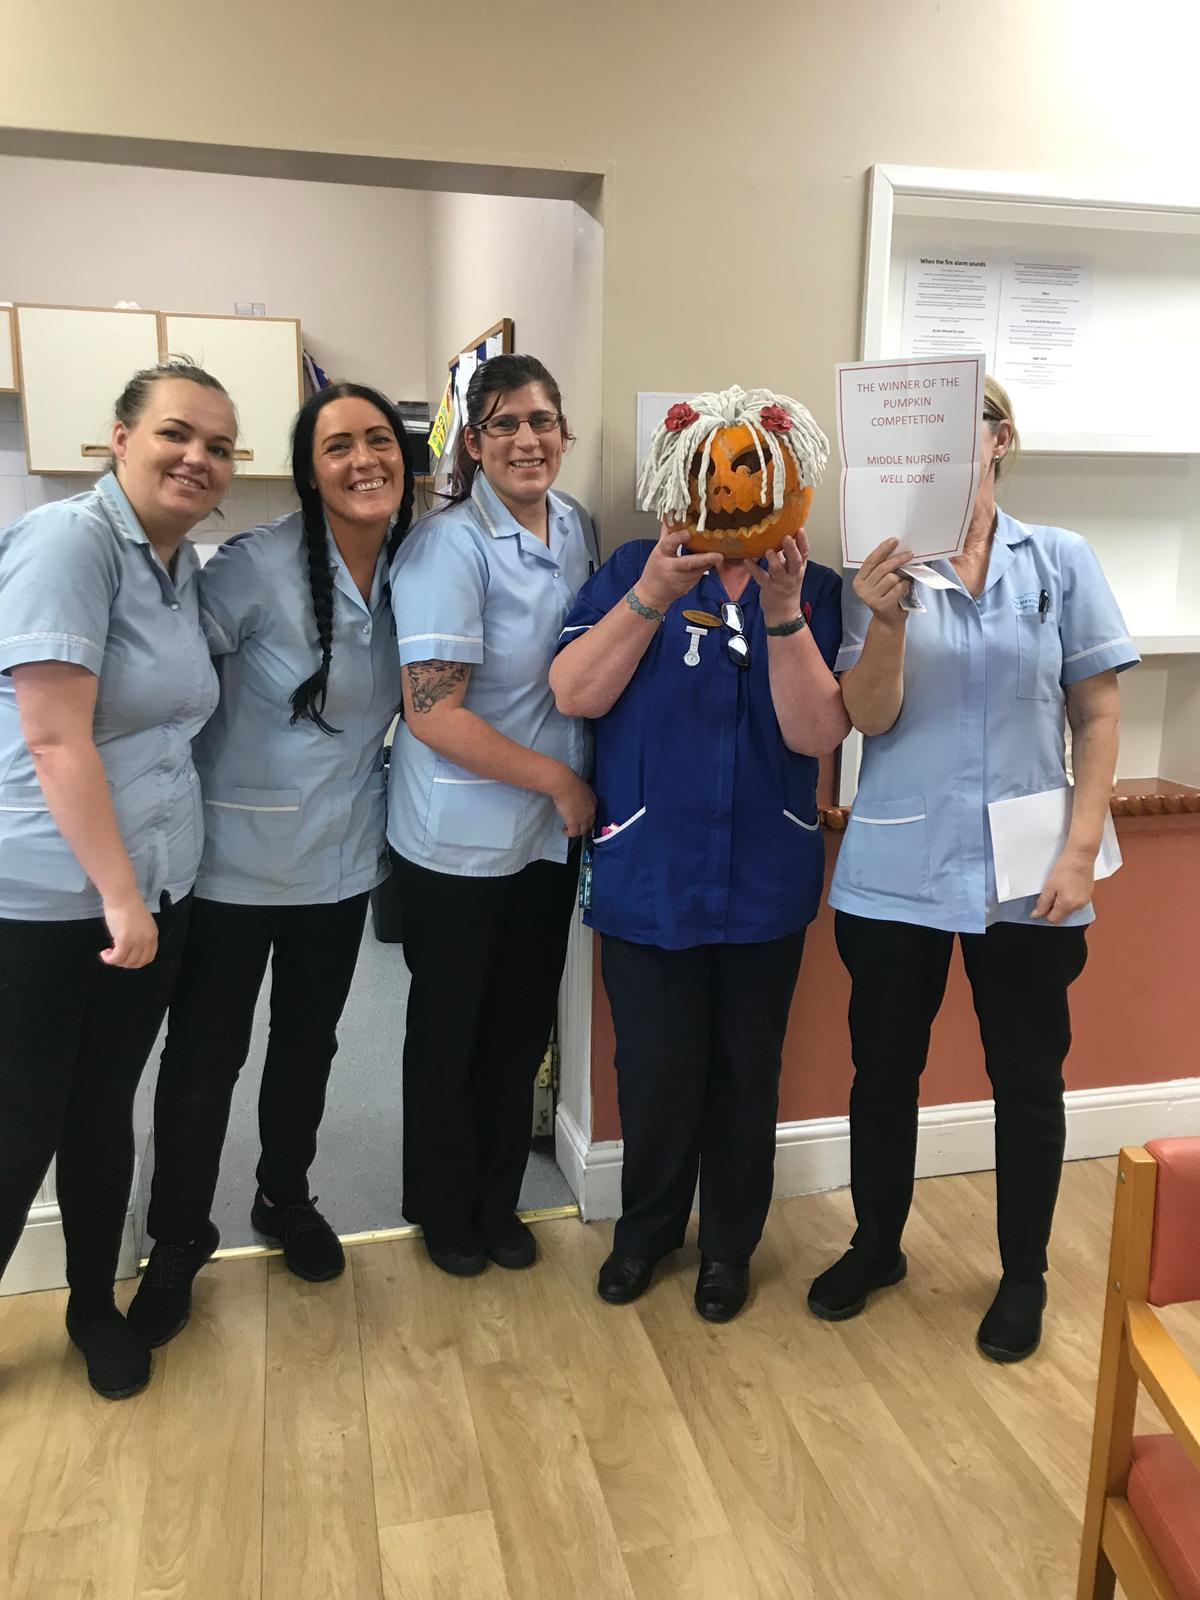 Pumpkin Competition 2018 at Victoria House Care Centre: Key Healthcare is dedicated to caring for elderly residents in safe. We have multiple dementia care homes including our care home middlesbrough, our care home St. Helen and care home saltburn. We excel in monitoring and improving care levels.